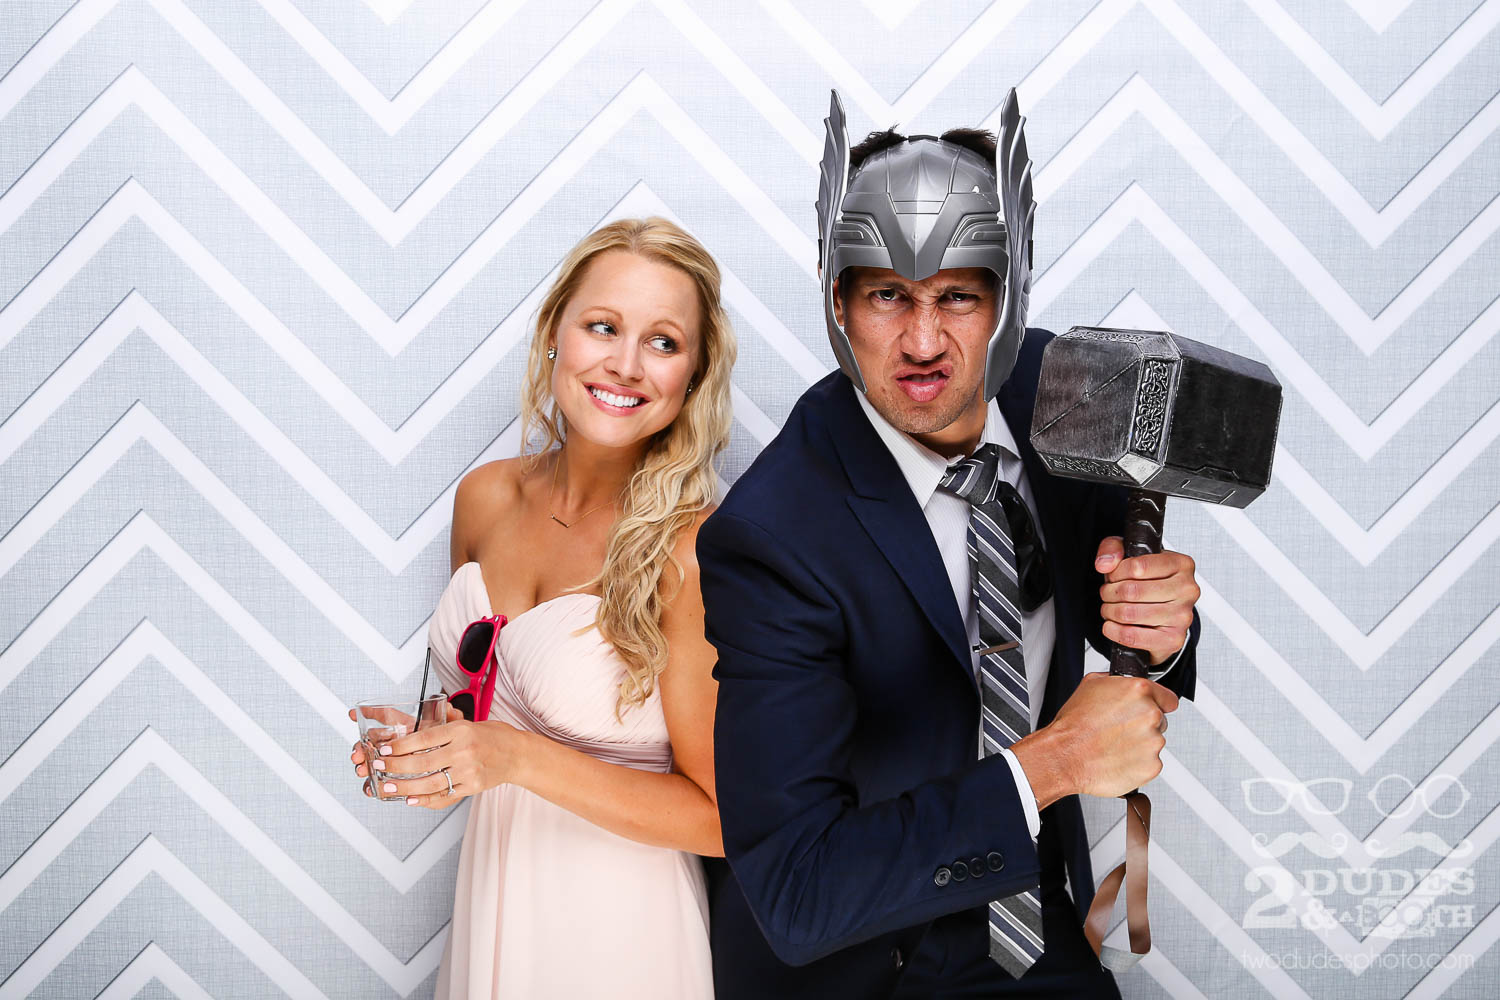 wedding photobooth props in geyserville | san francisco open air photo booth